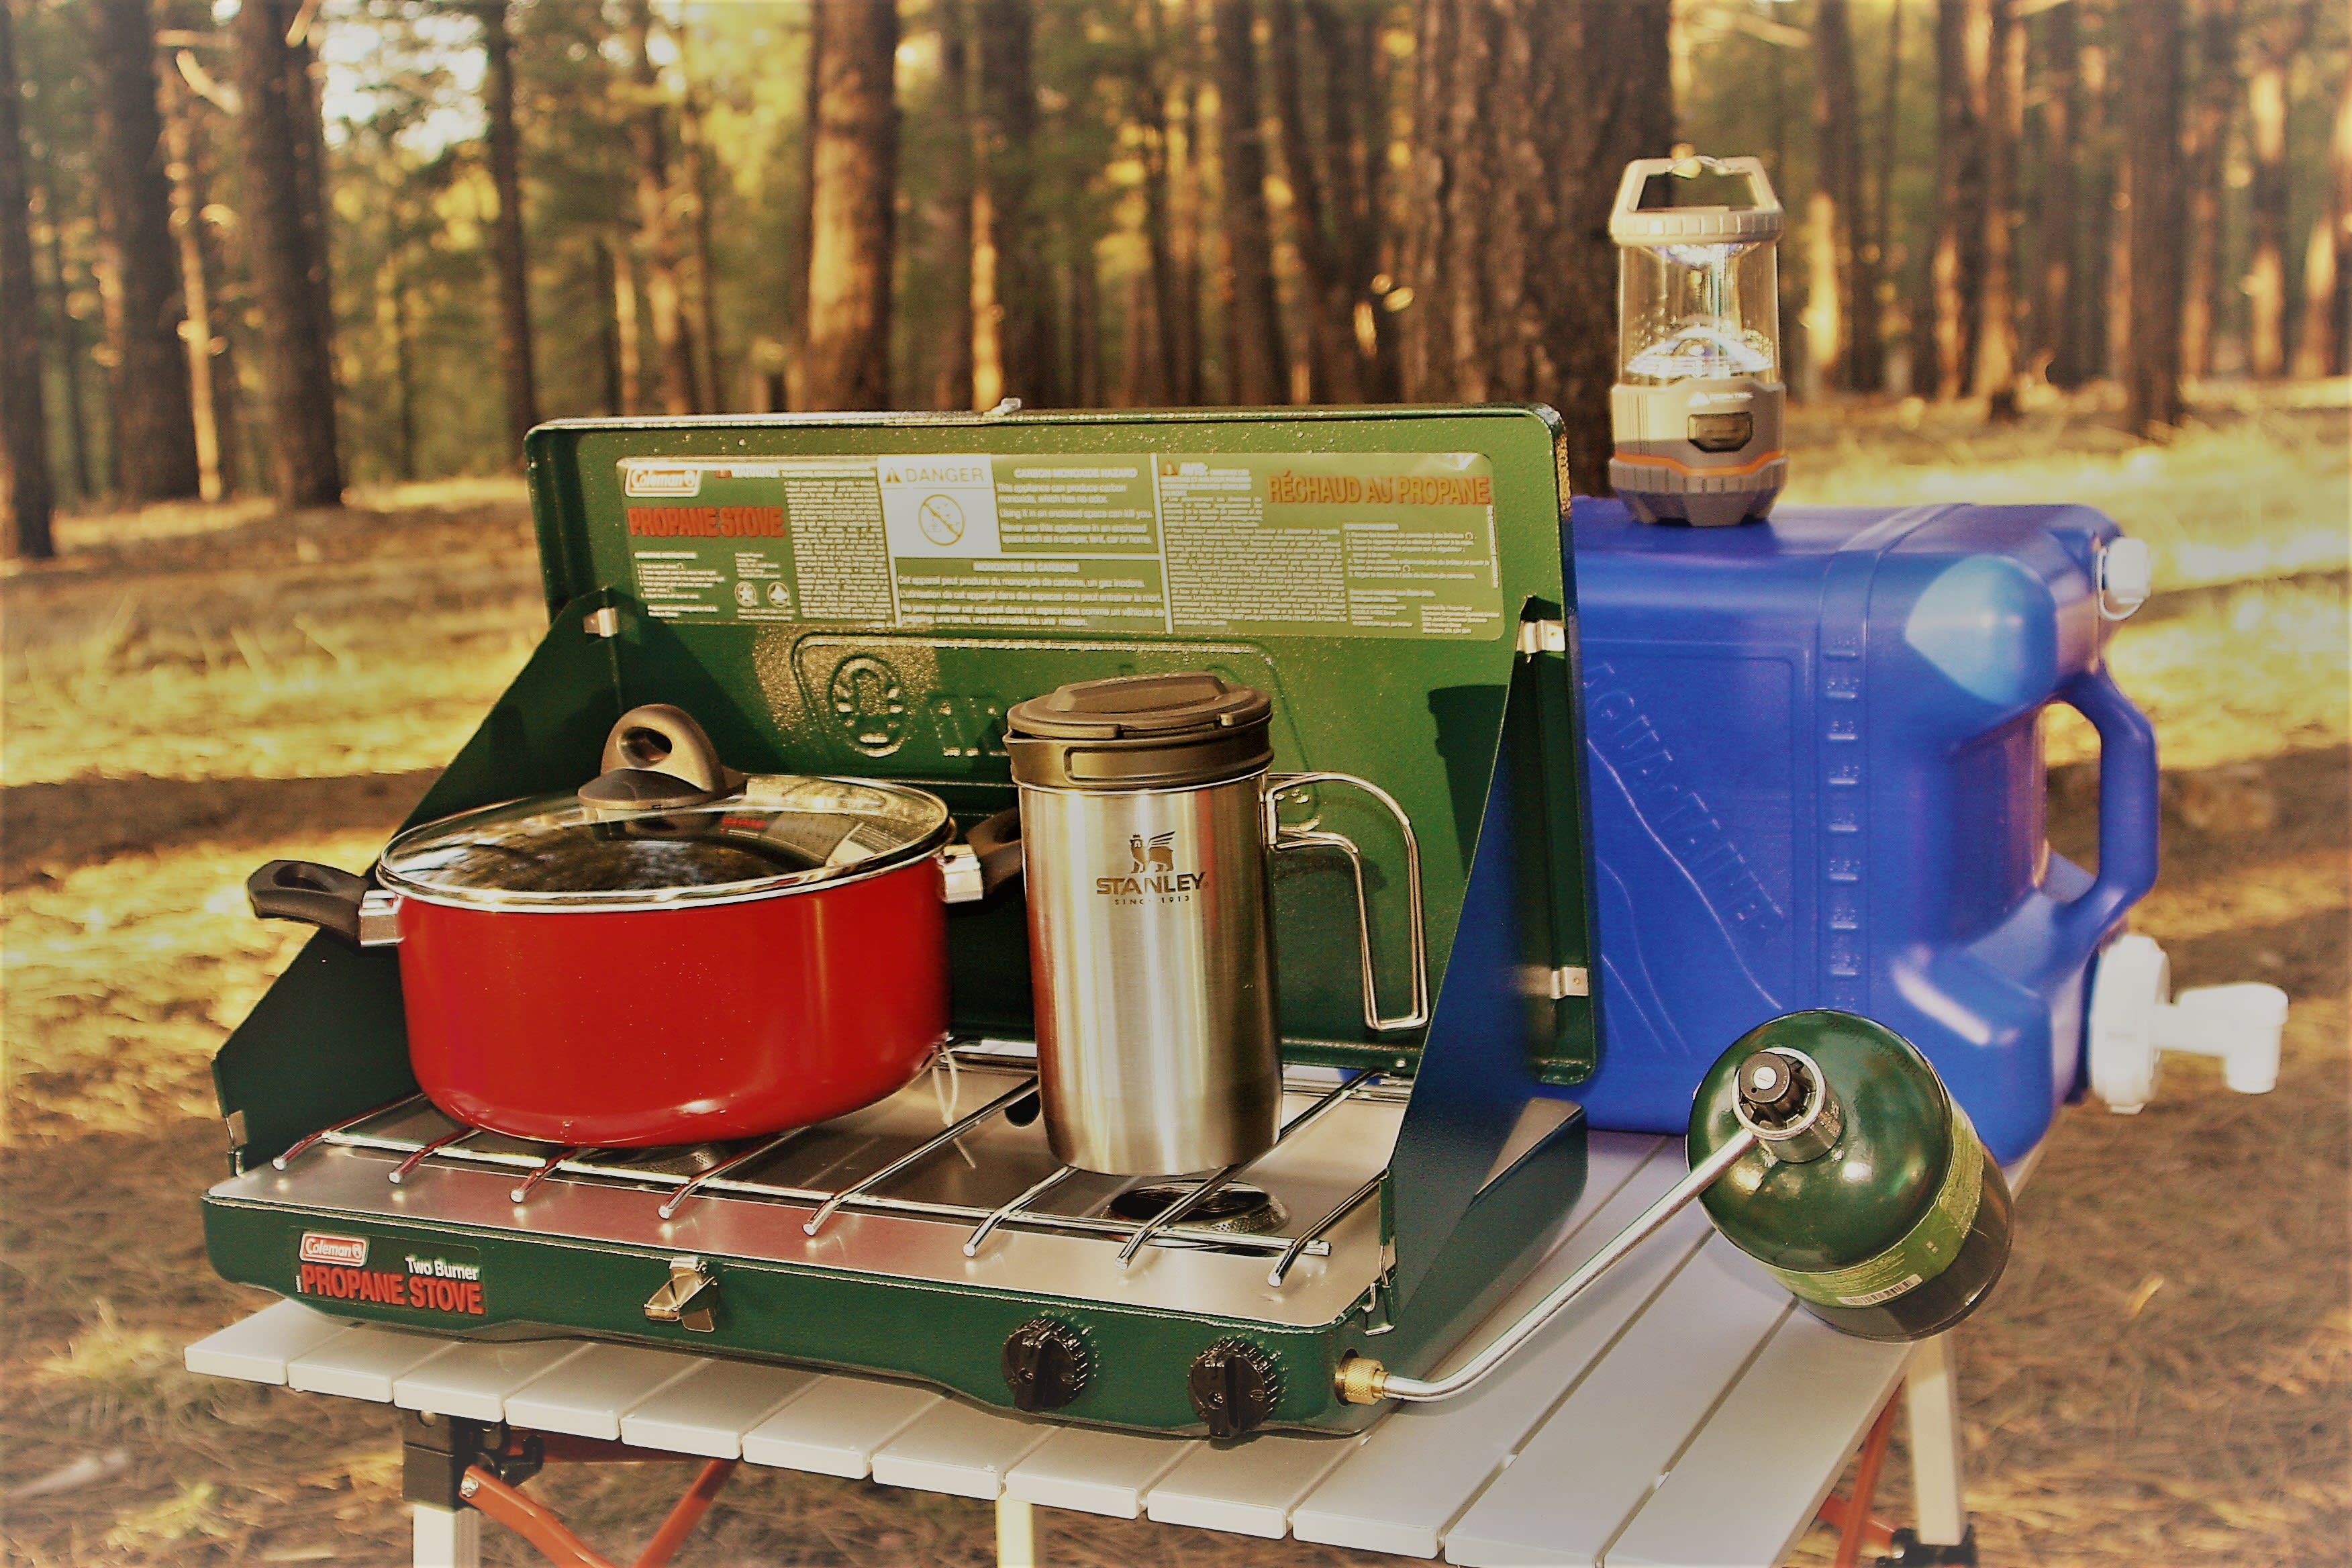 Your fully equipped kitchen box includes: pots, pans, griddle, cutting boards, utensils, knives, silverware, plates, bowls, cups, french press, insulated mugs, grater, corkscrew/bottle opener, dish towels, dish soap and sponges, lighters and more.. Jeep Wrangler Unlimited Sahara 2017